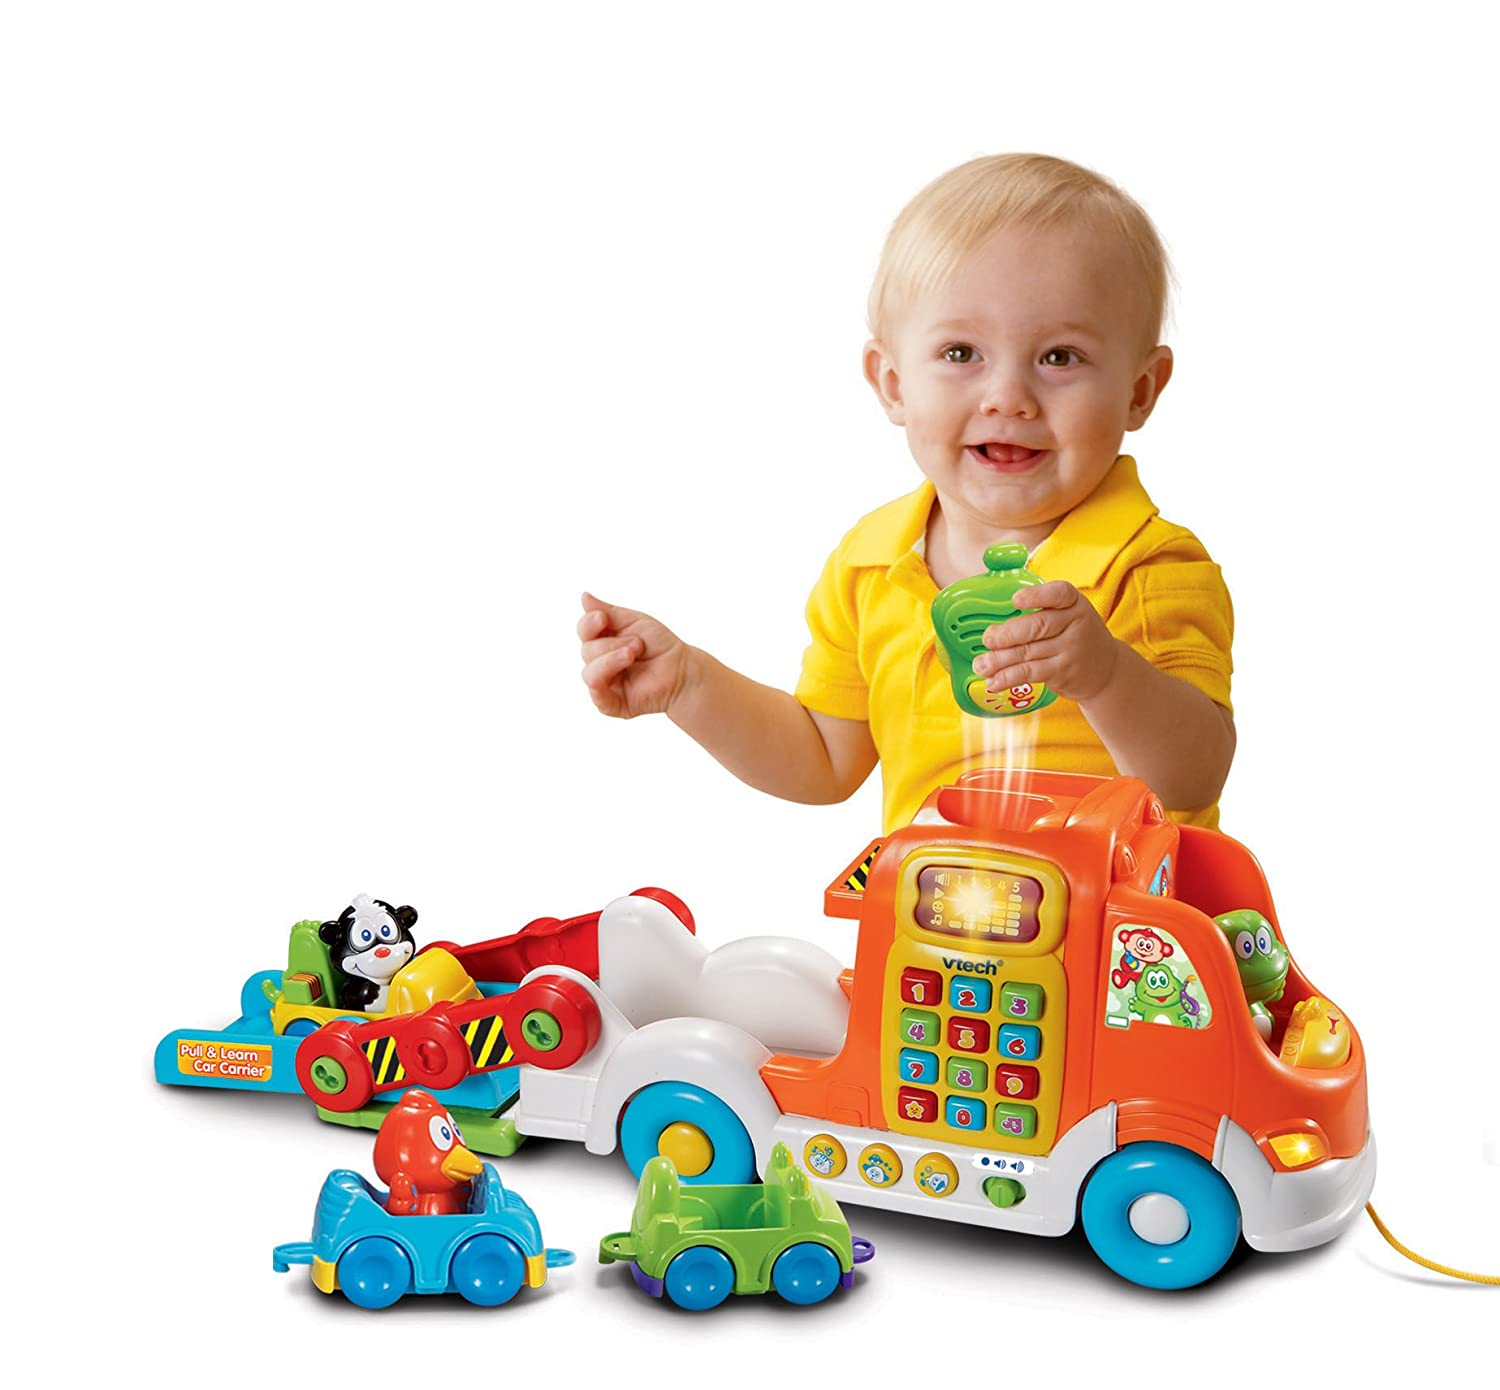 Vtech Pull N Learn Car Carrier Amazon Toys & Games